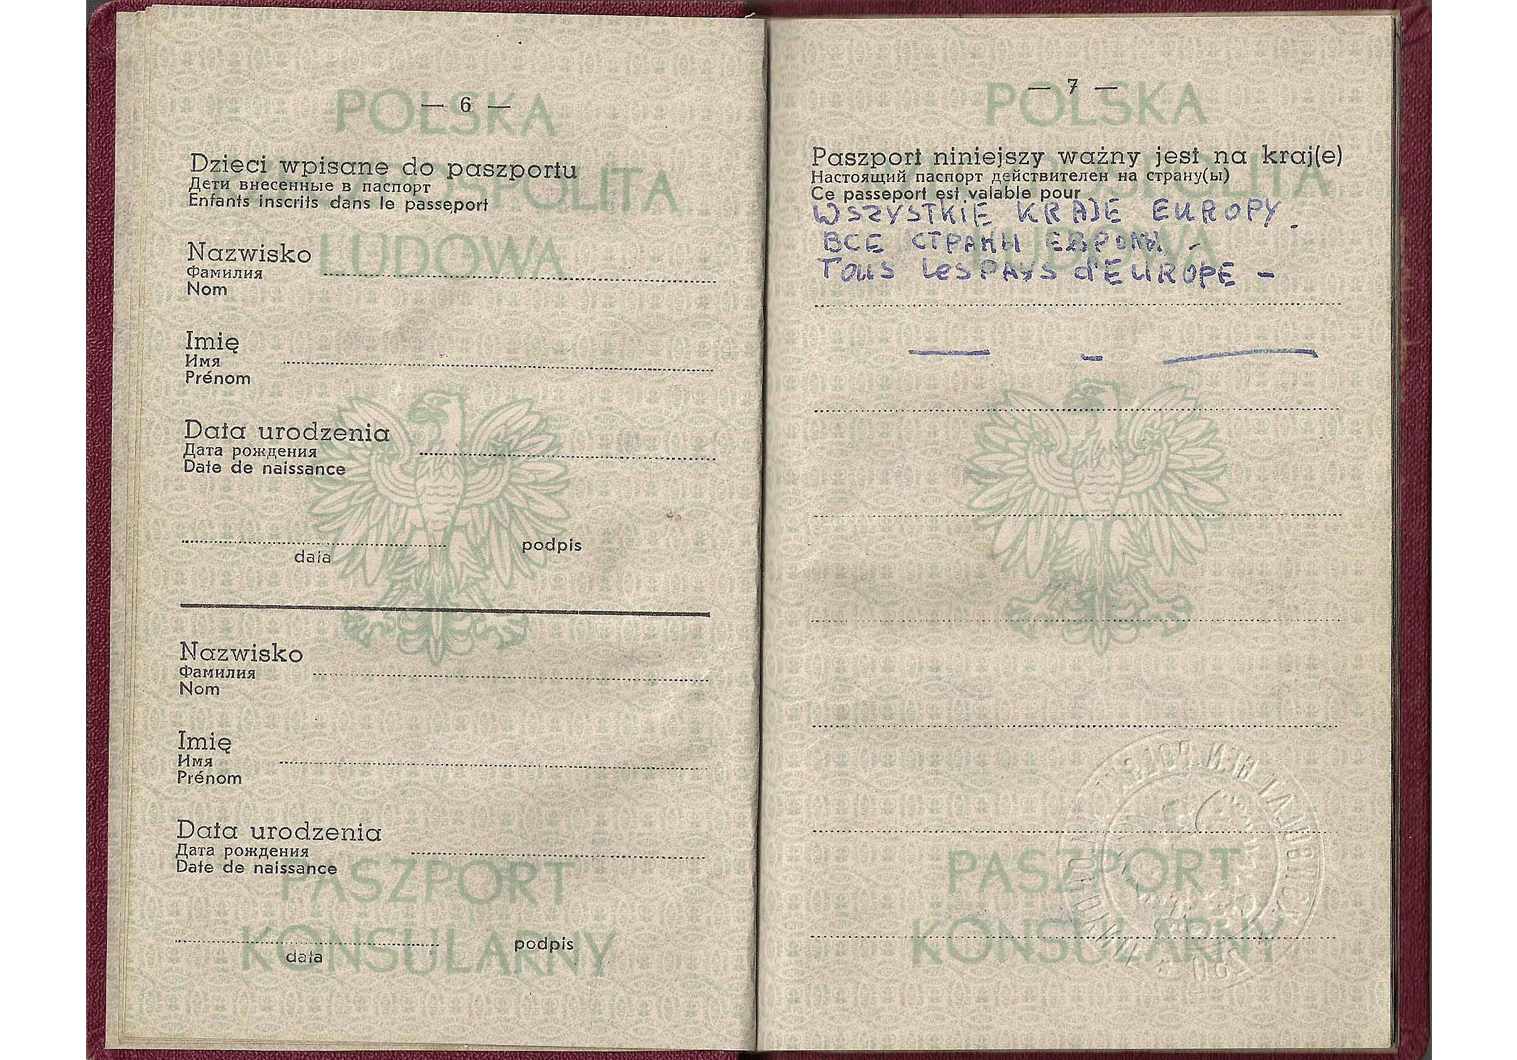 1958 Polish consular passport